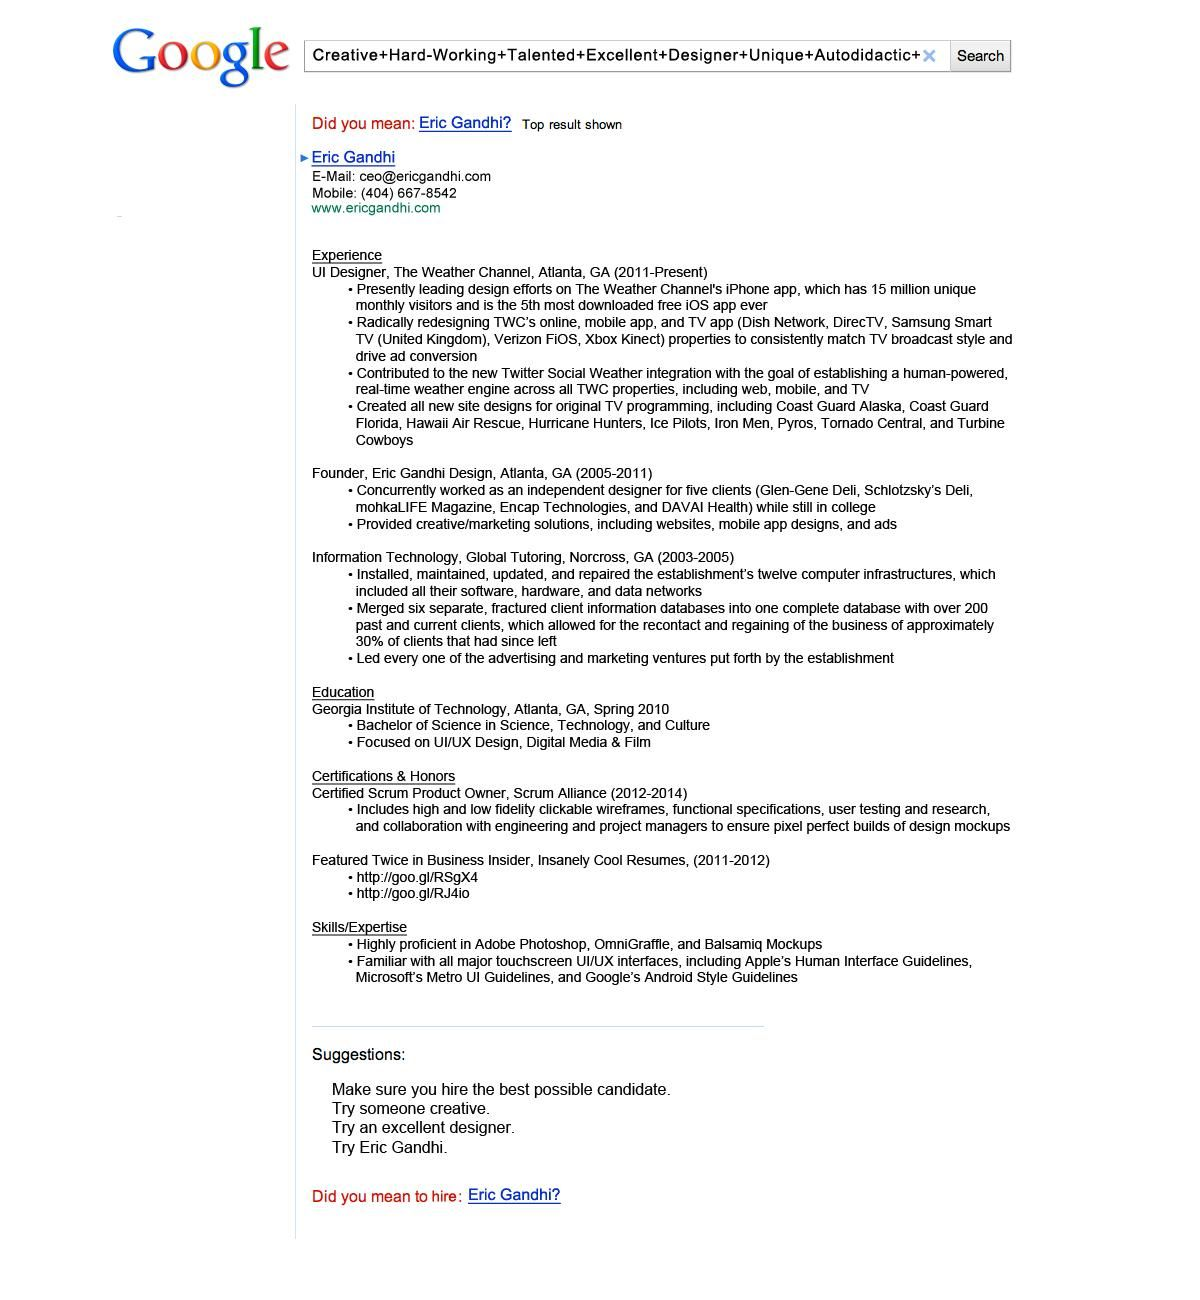 Google Resume by Eric Gandhi #Creative Resume | "|1200|1300|?|04796f41d6ea81de9ac365c832acabe4|False|UNLIKELY|0.36226823925971985